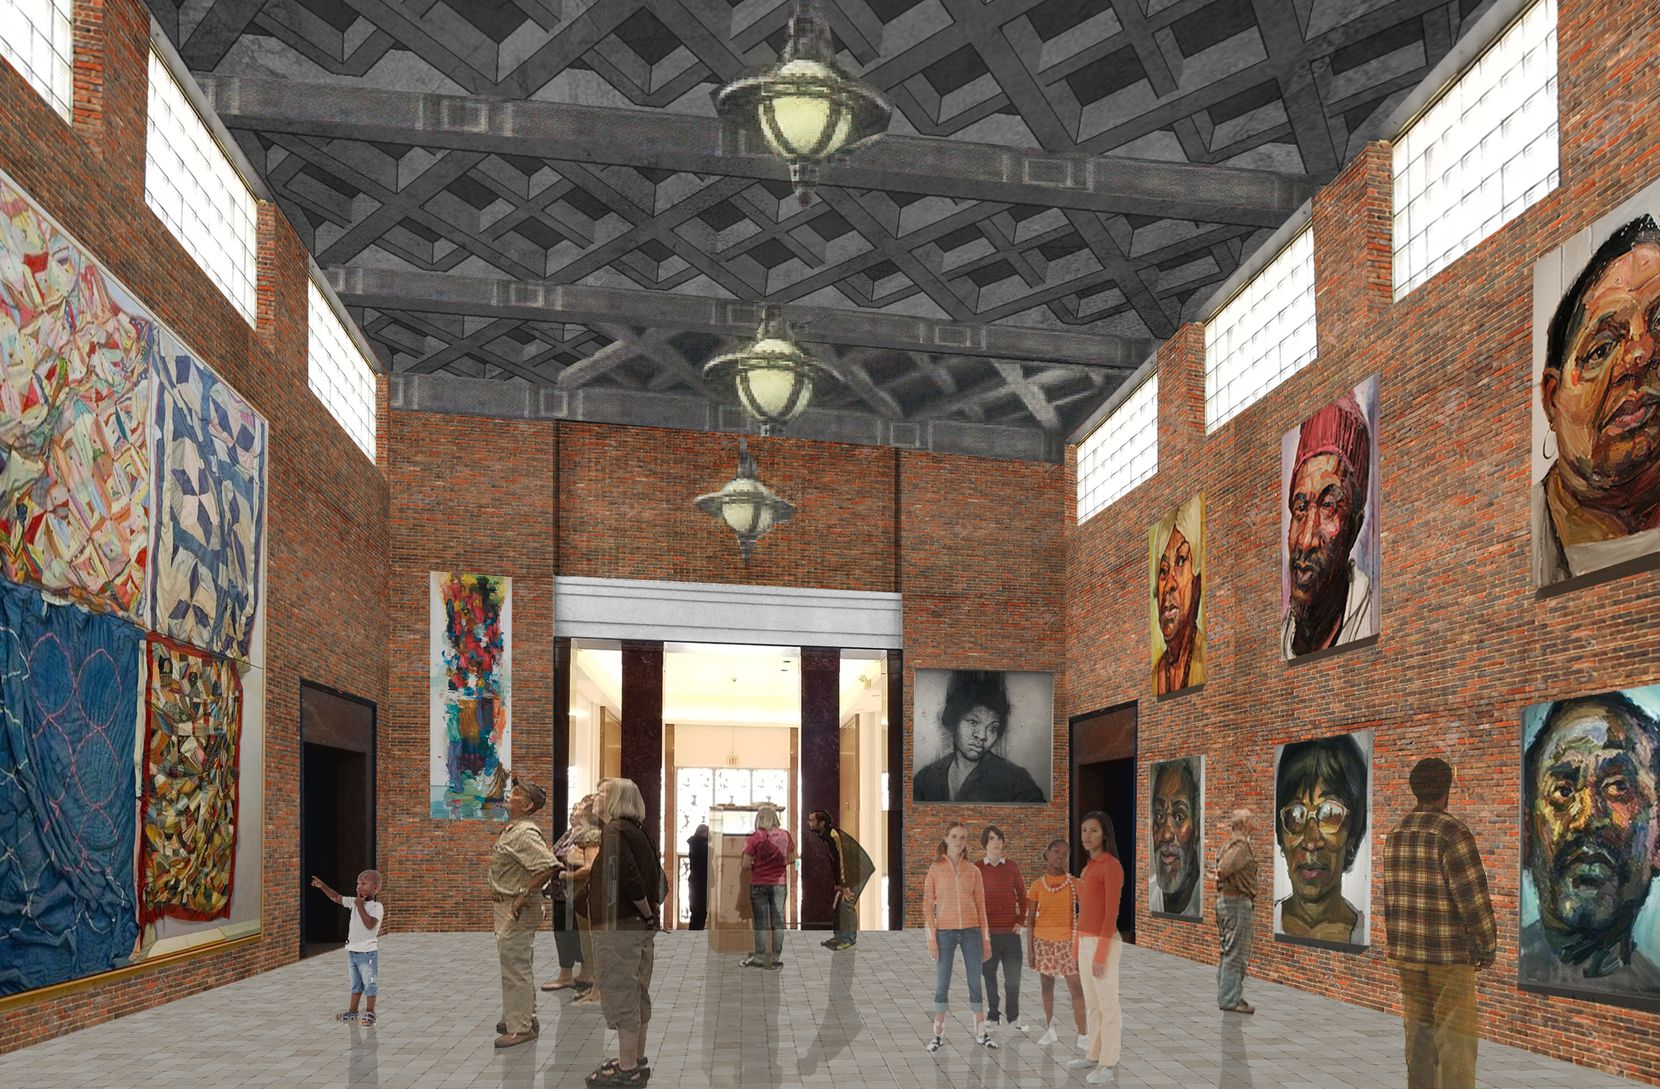 A rendering by Cunningham Architects shows what the main gallery could look like for a proposed Museum of Texas Art at Fair Park.